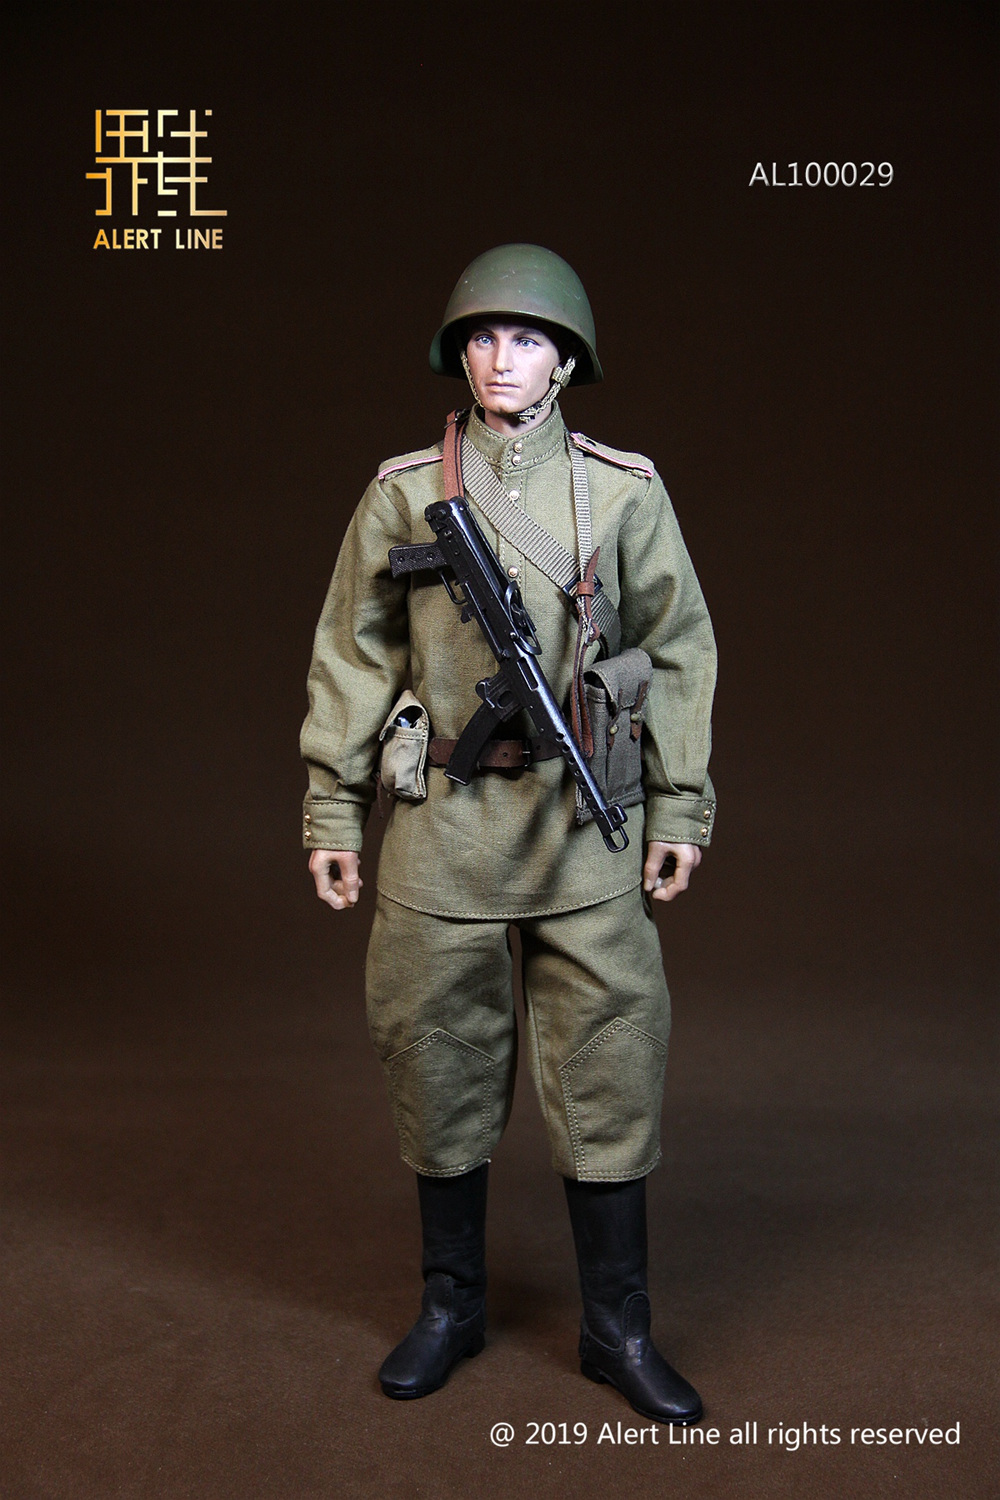 male - NEW PRODUCT: Alert Line: 1/6 WWII World War II Soviet Union - assault engineering action figure AL100029# 11210911